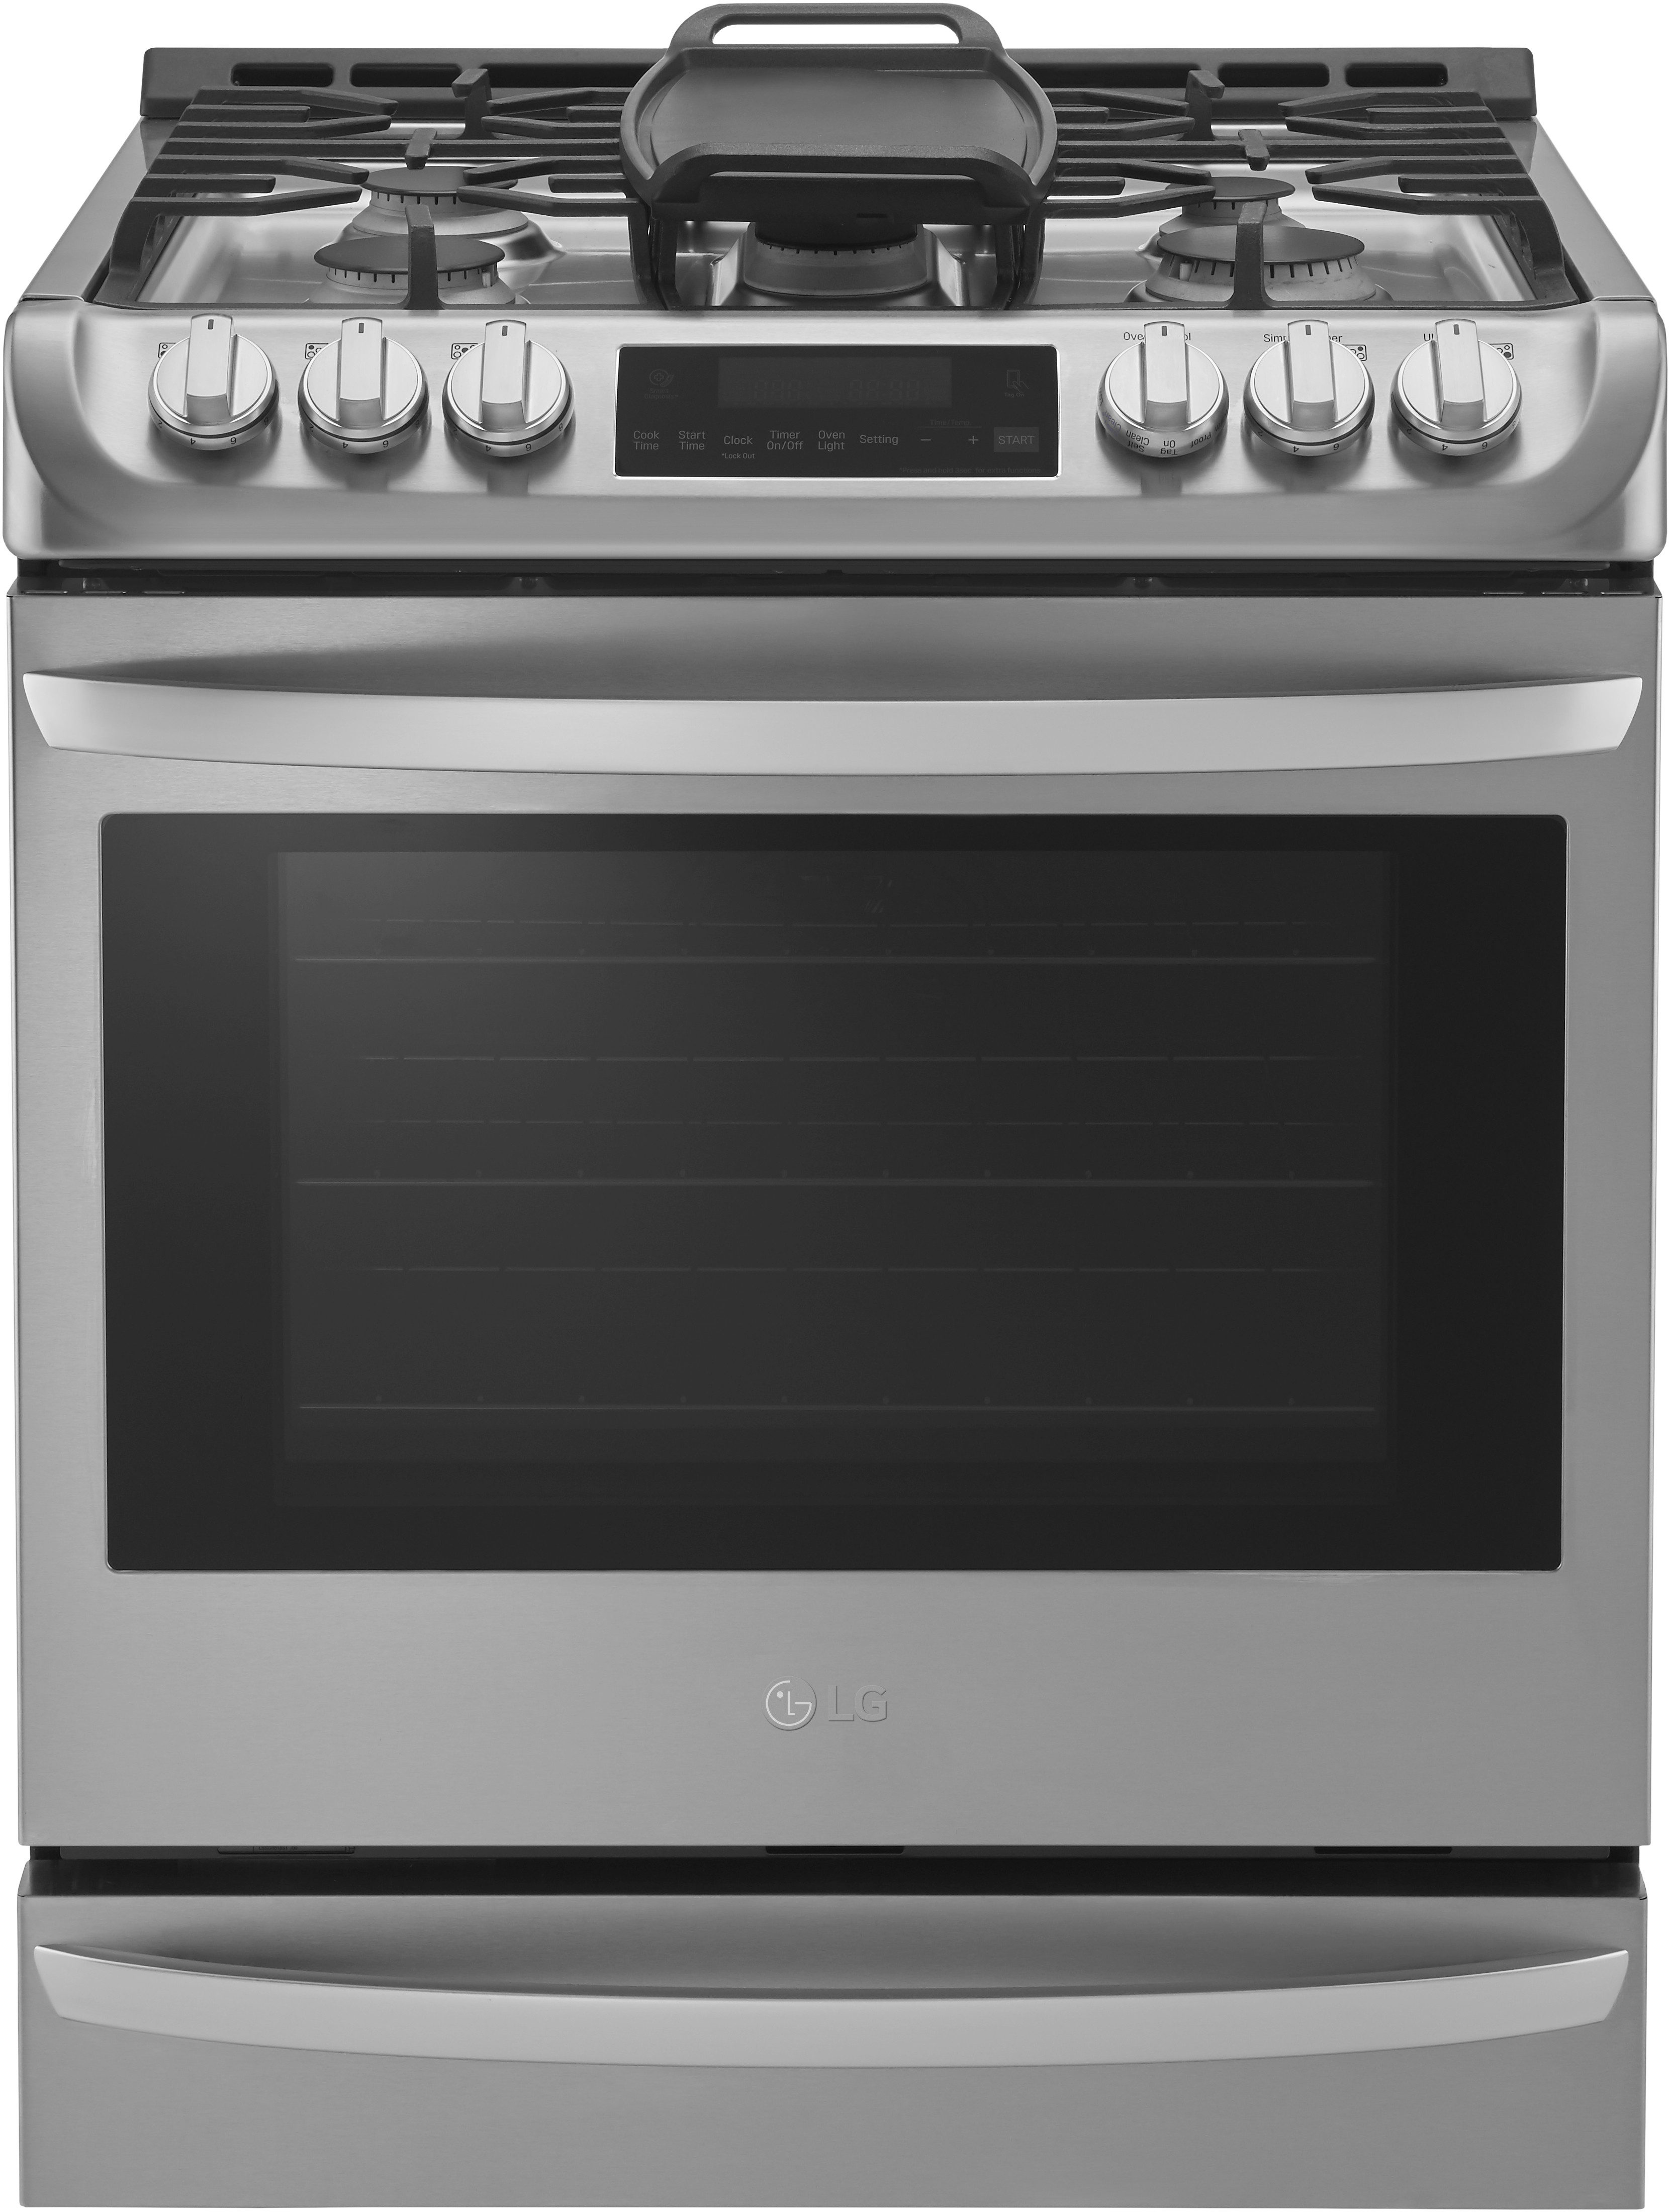 Lg Lsg4513st 30 Inch Slide In Gas Range With Convection Ultraheat Burner Easyclean 6 3 Cu Ft Capacity 5 Sealed Burners 11 Cooking Modes